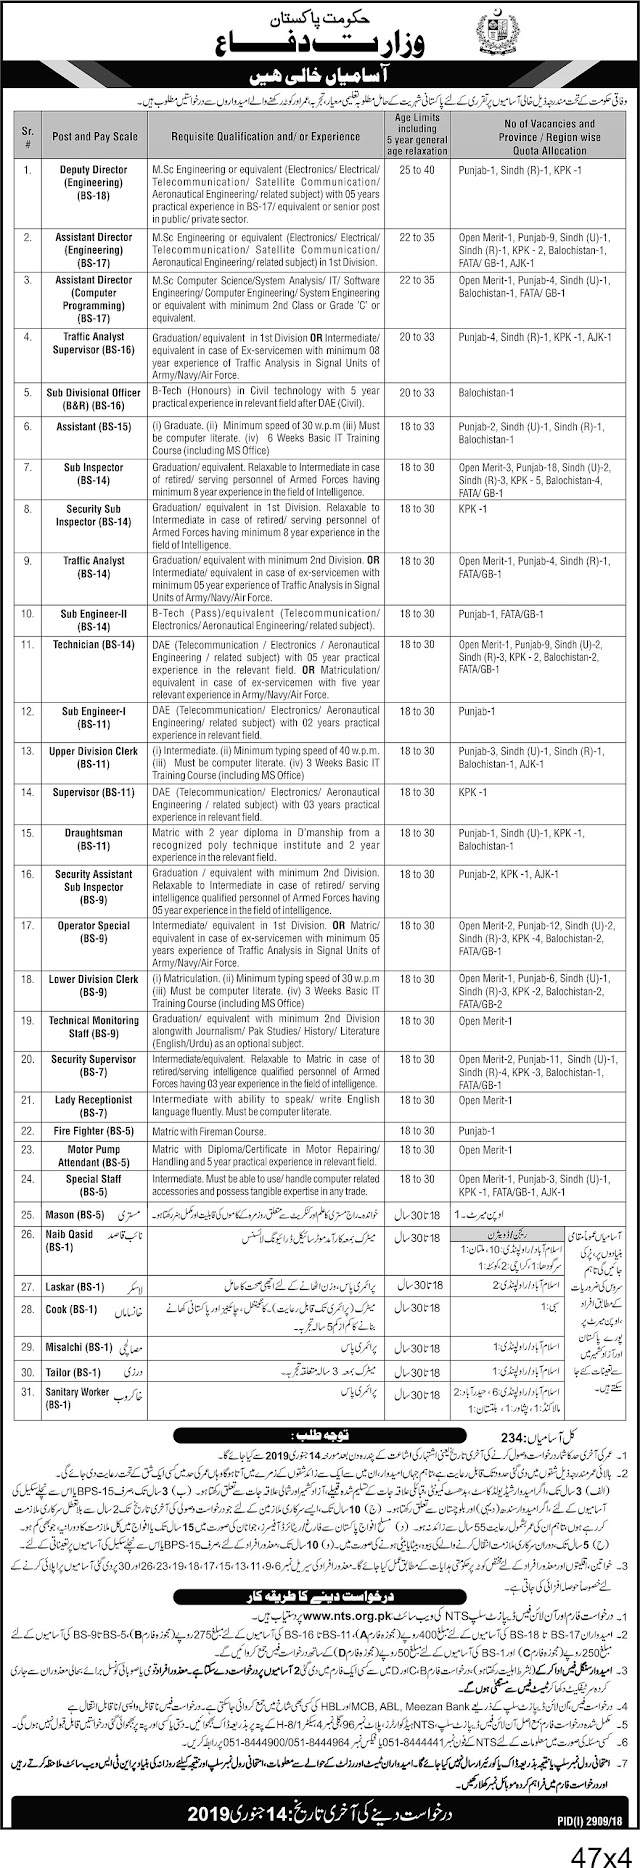 VACANCIES IN MINISTRY OF DEFENCE